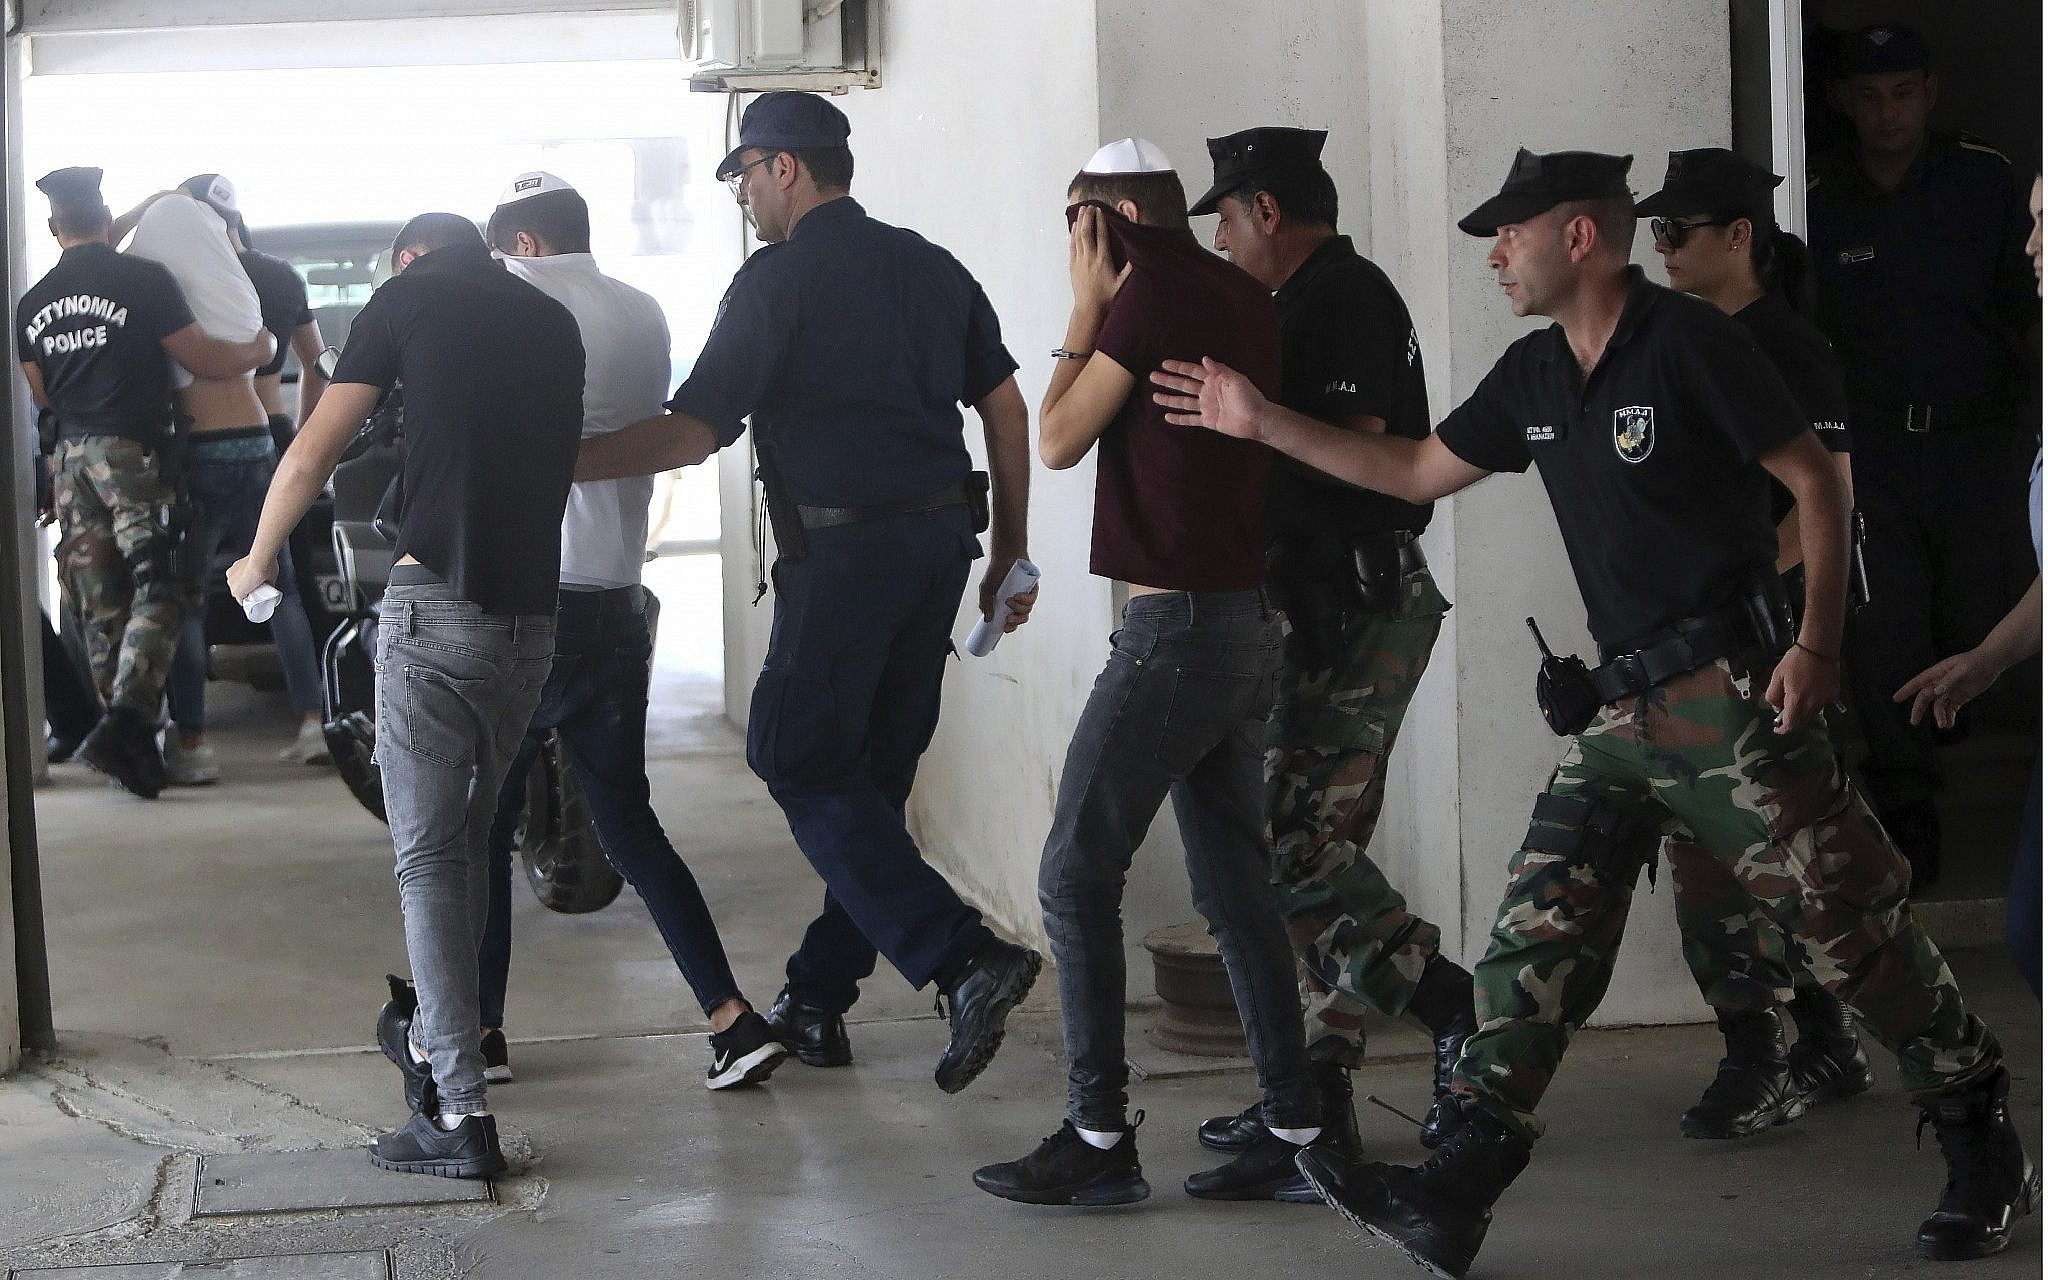 Cyprus Releasing All Israeli Suspects in Alleged Gang-Rape of UK Tourist